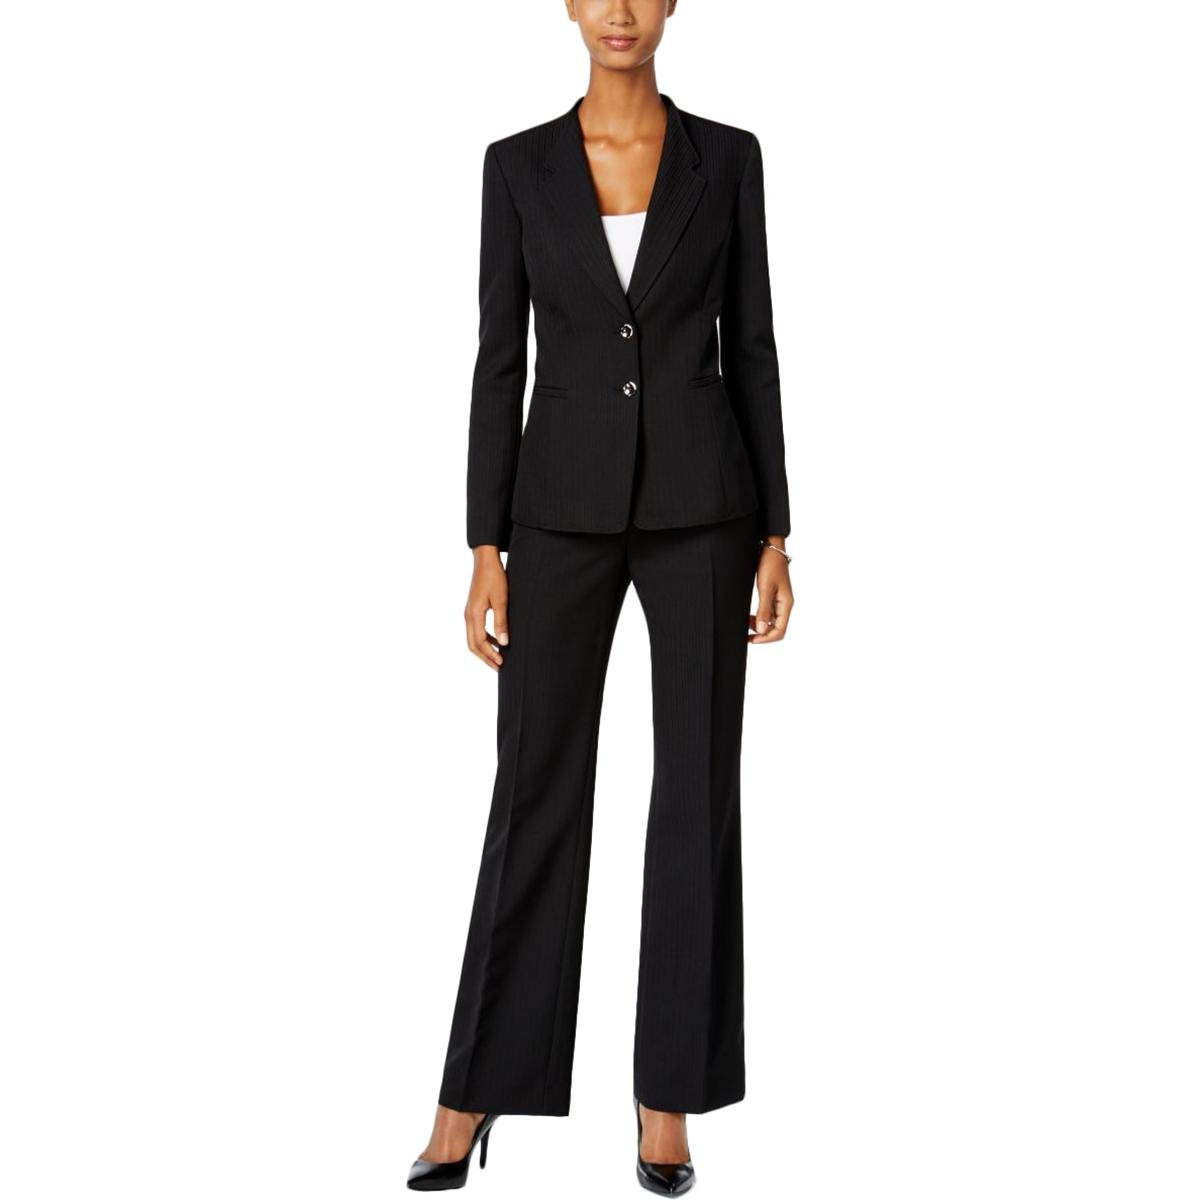 Tahari Womens Petites 2PC 2 Button Pant Suit Black 4P by Tahari